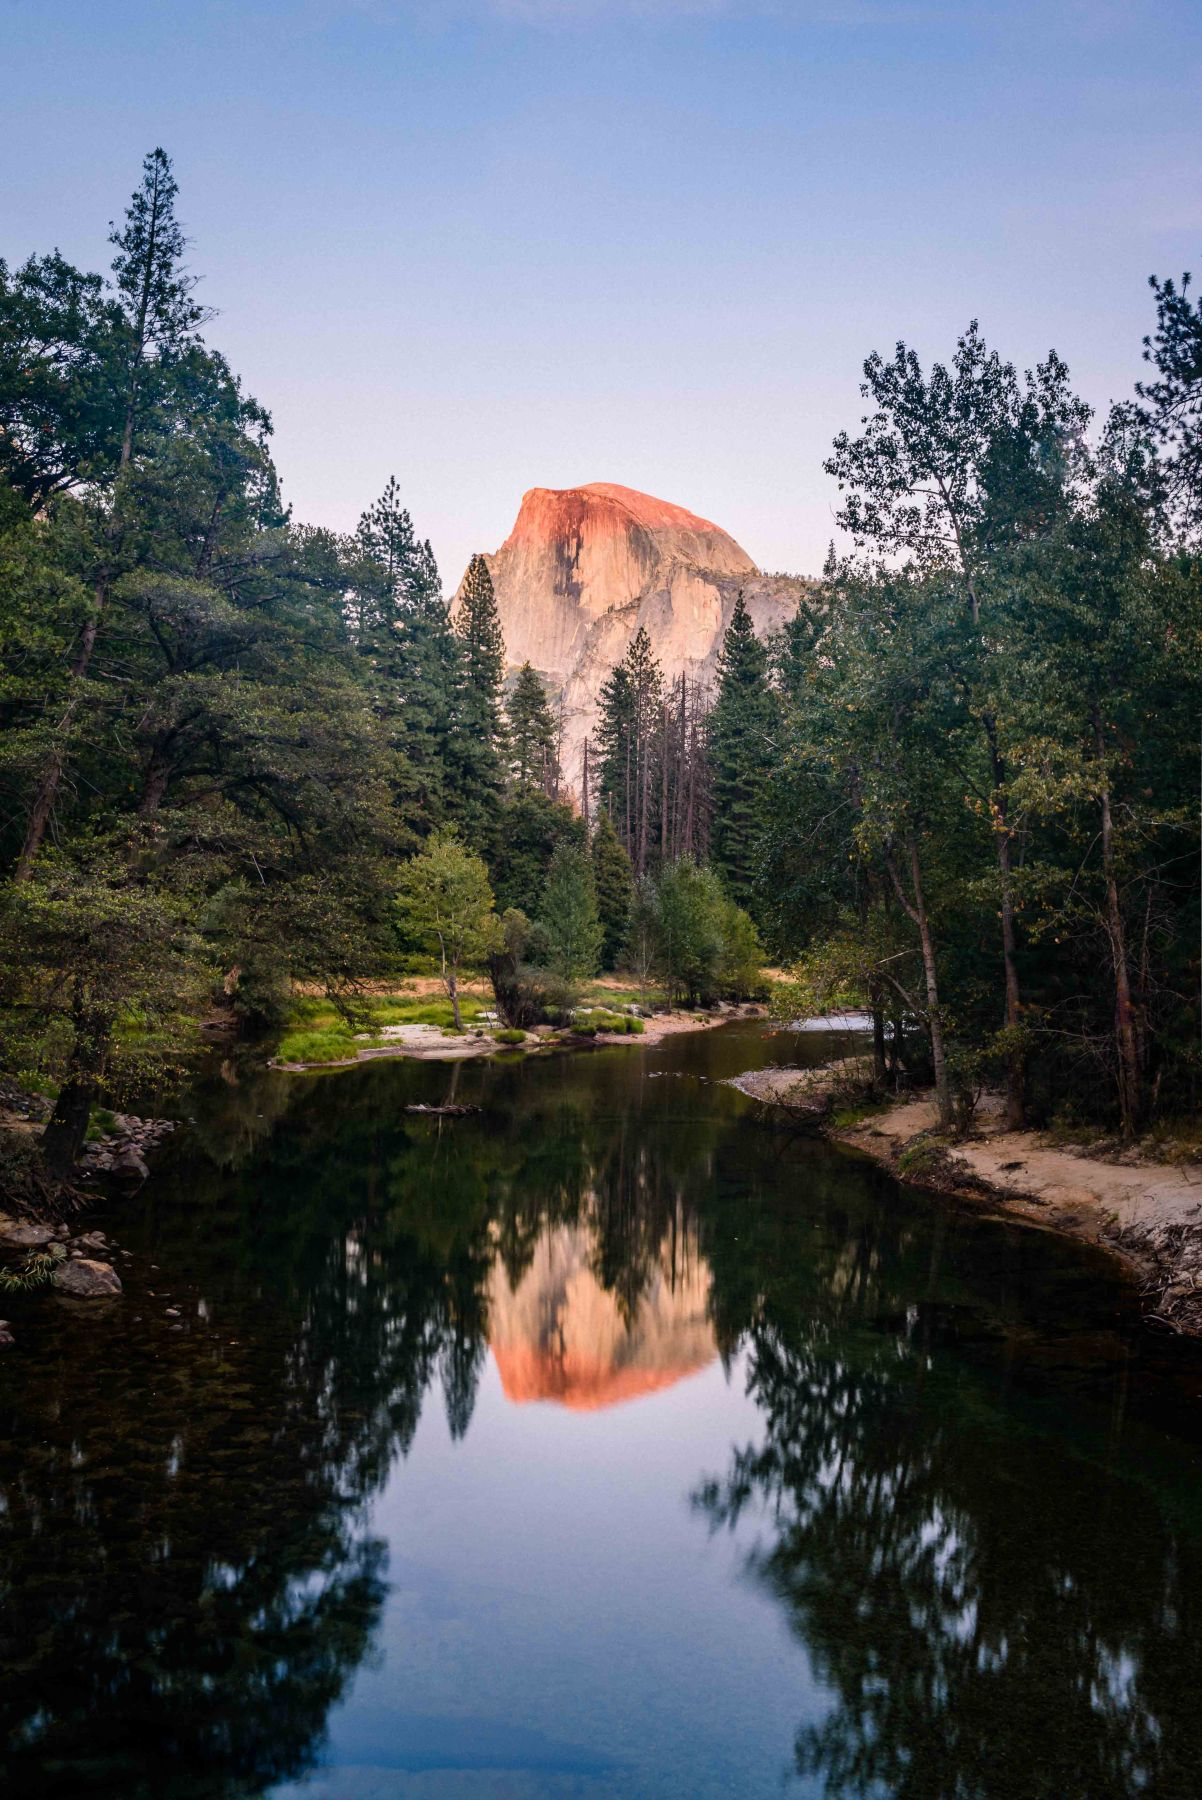 neilson travel landscape photography bay area photographer Yosemite twilight